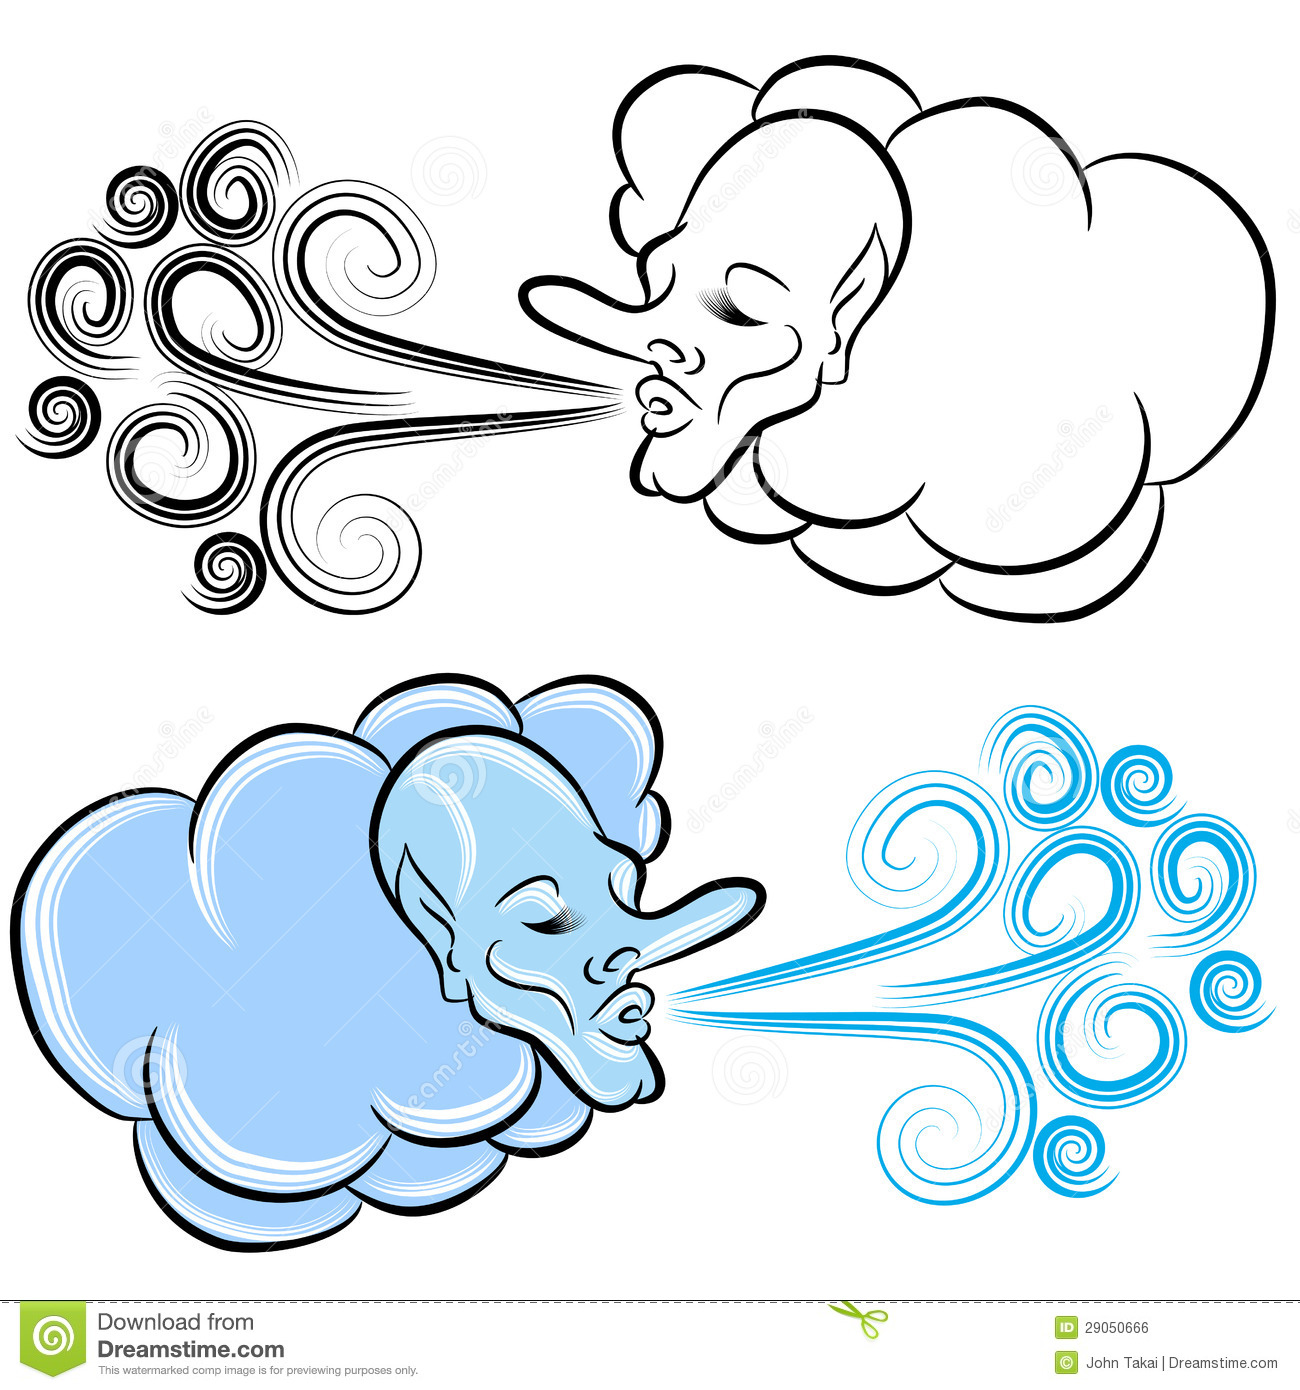 Blowing breath clipart vector free download Breathing clipart deep breath, Breathing deep breath Transparent ... vector free download